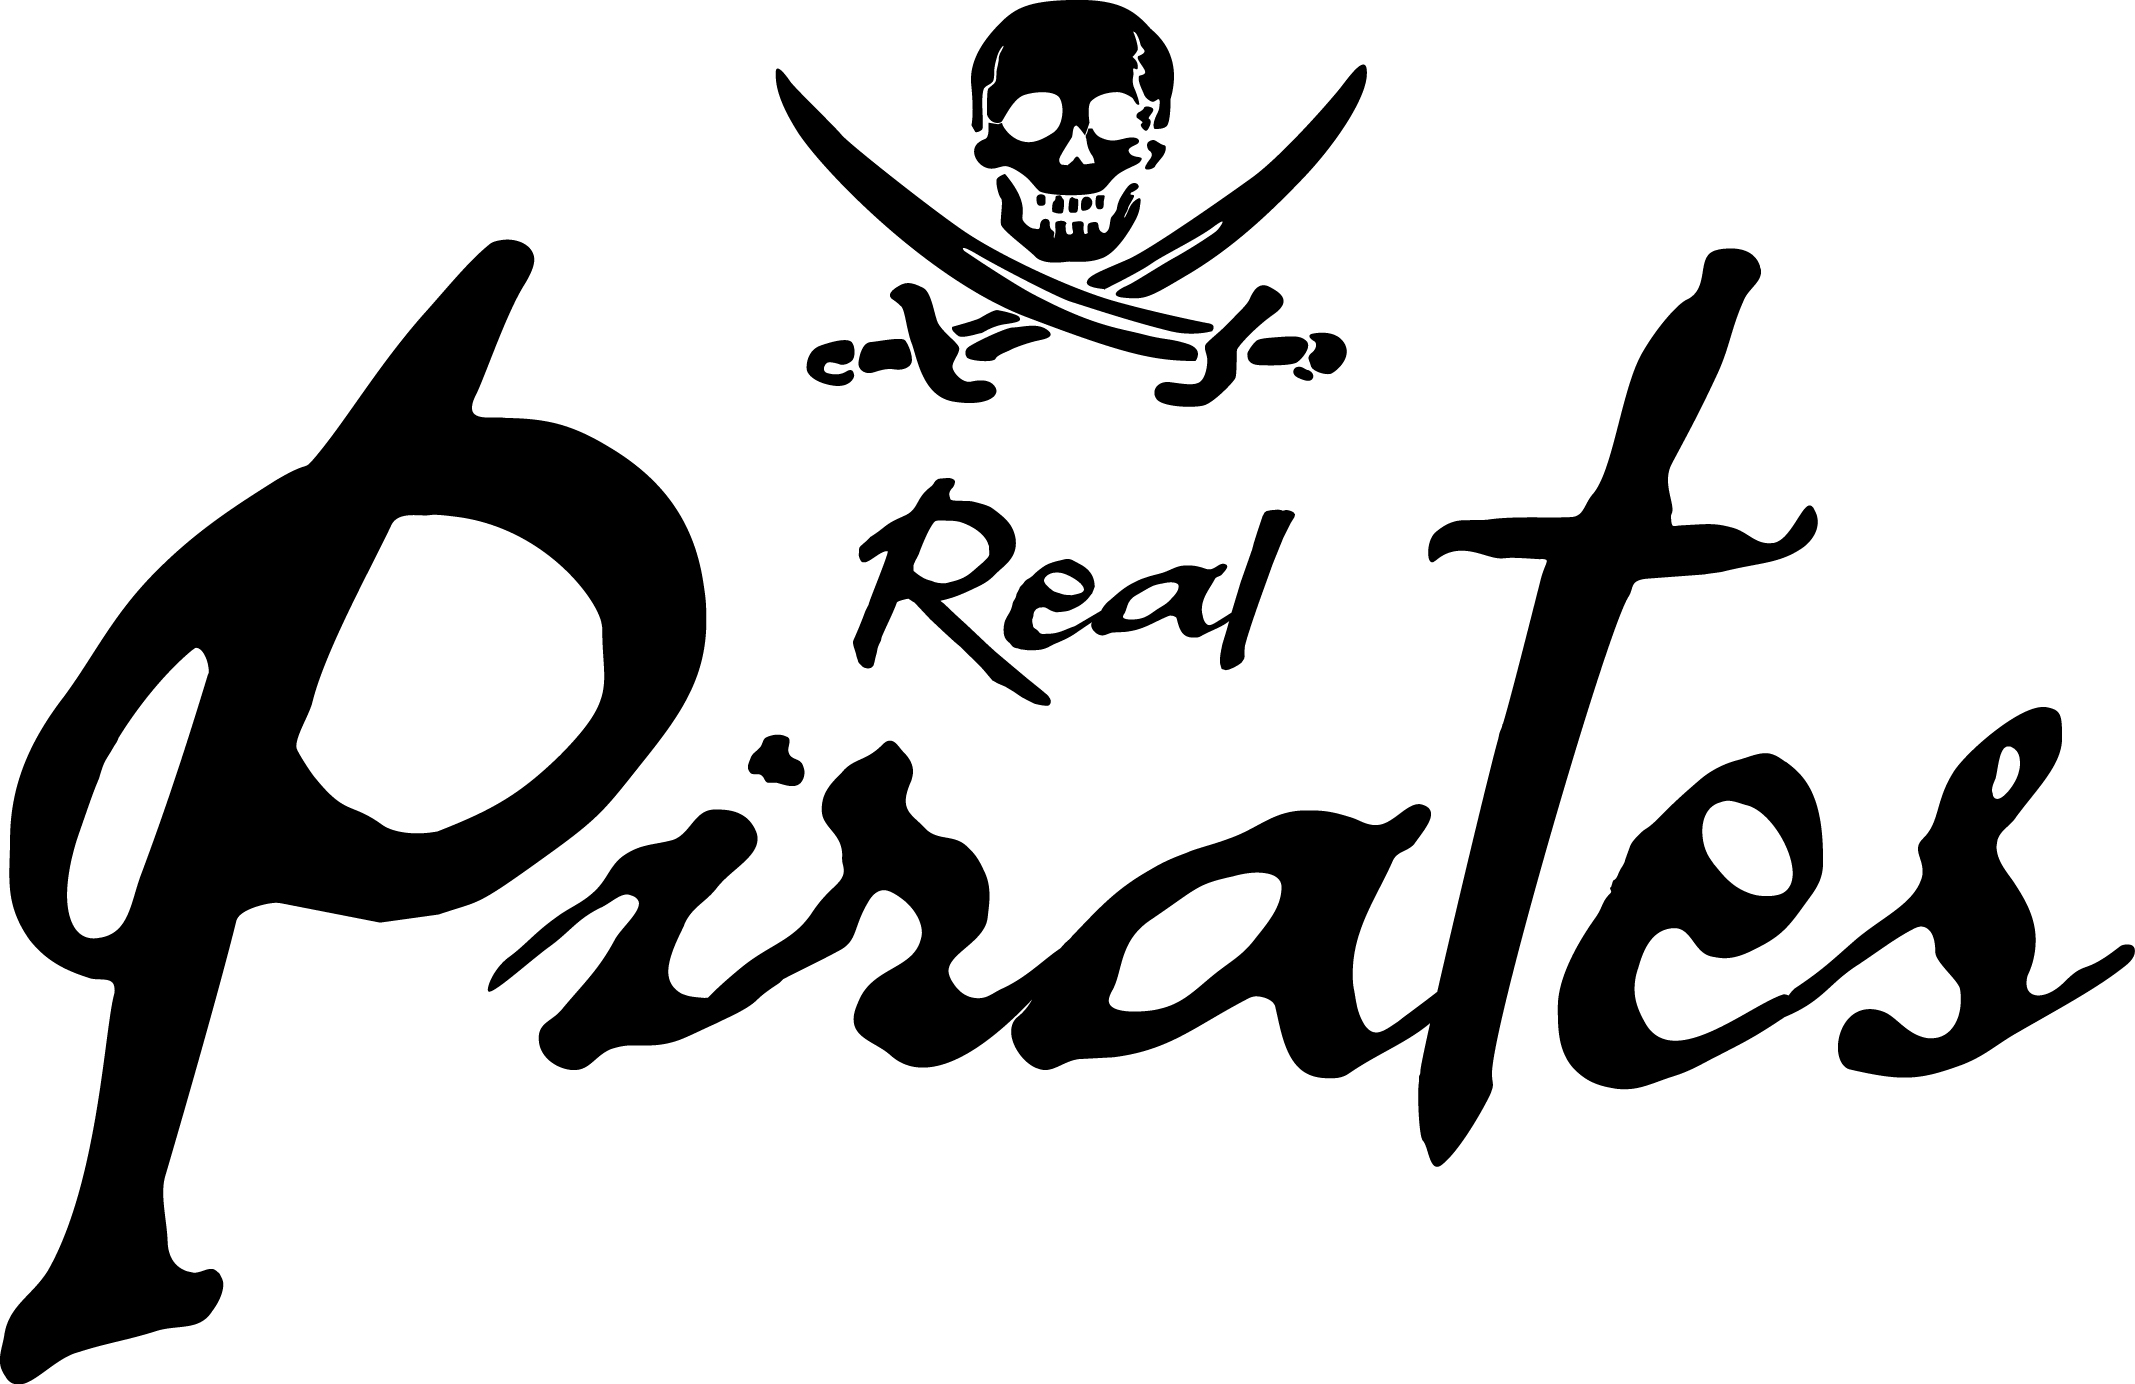 NATIONAL GEOGRAPHICS EmREAL PIRATESem EXHIBITION TO OPEN AT - Pirate museums in the us